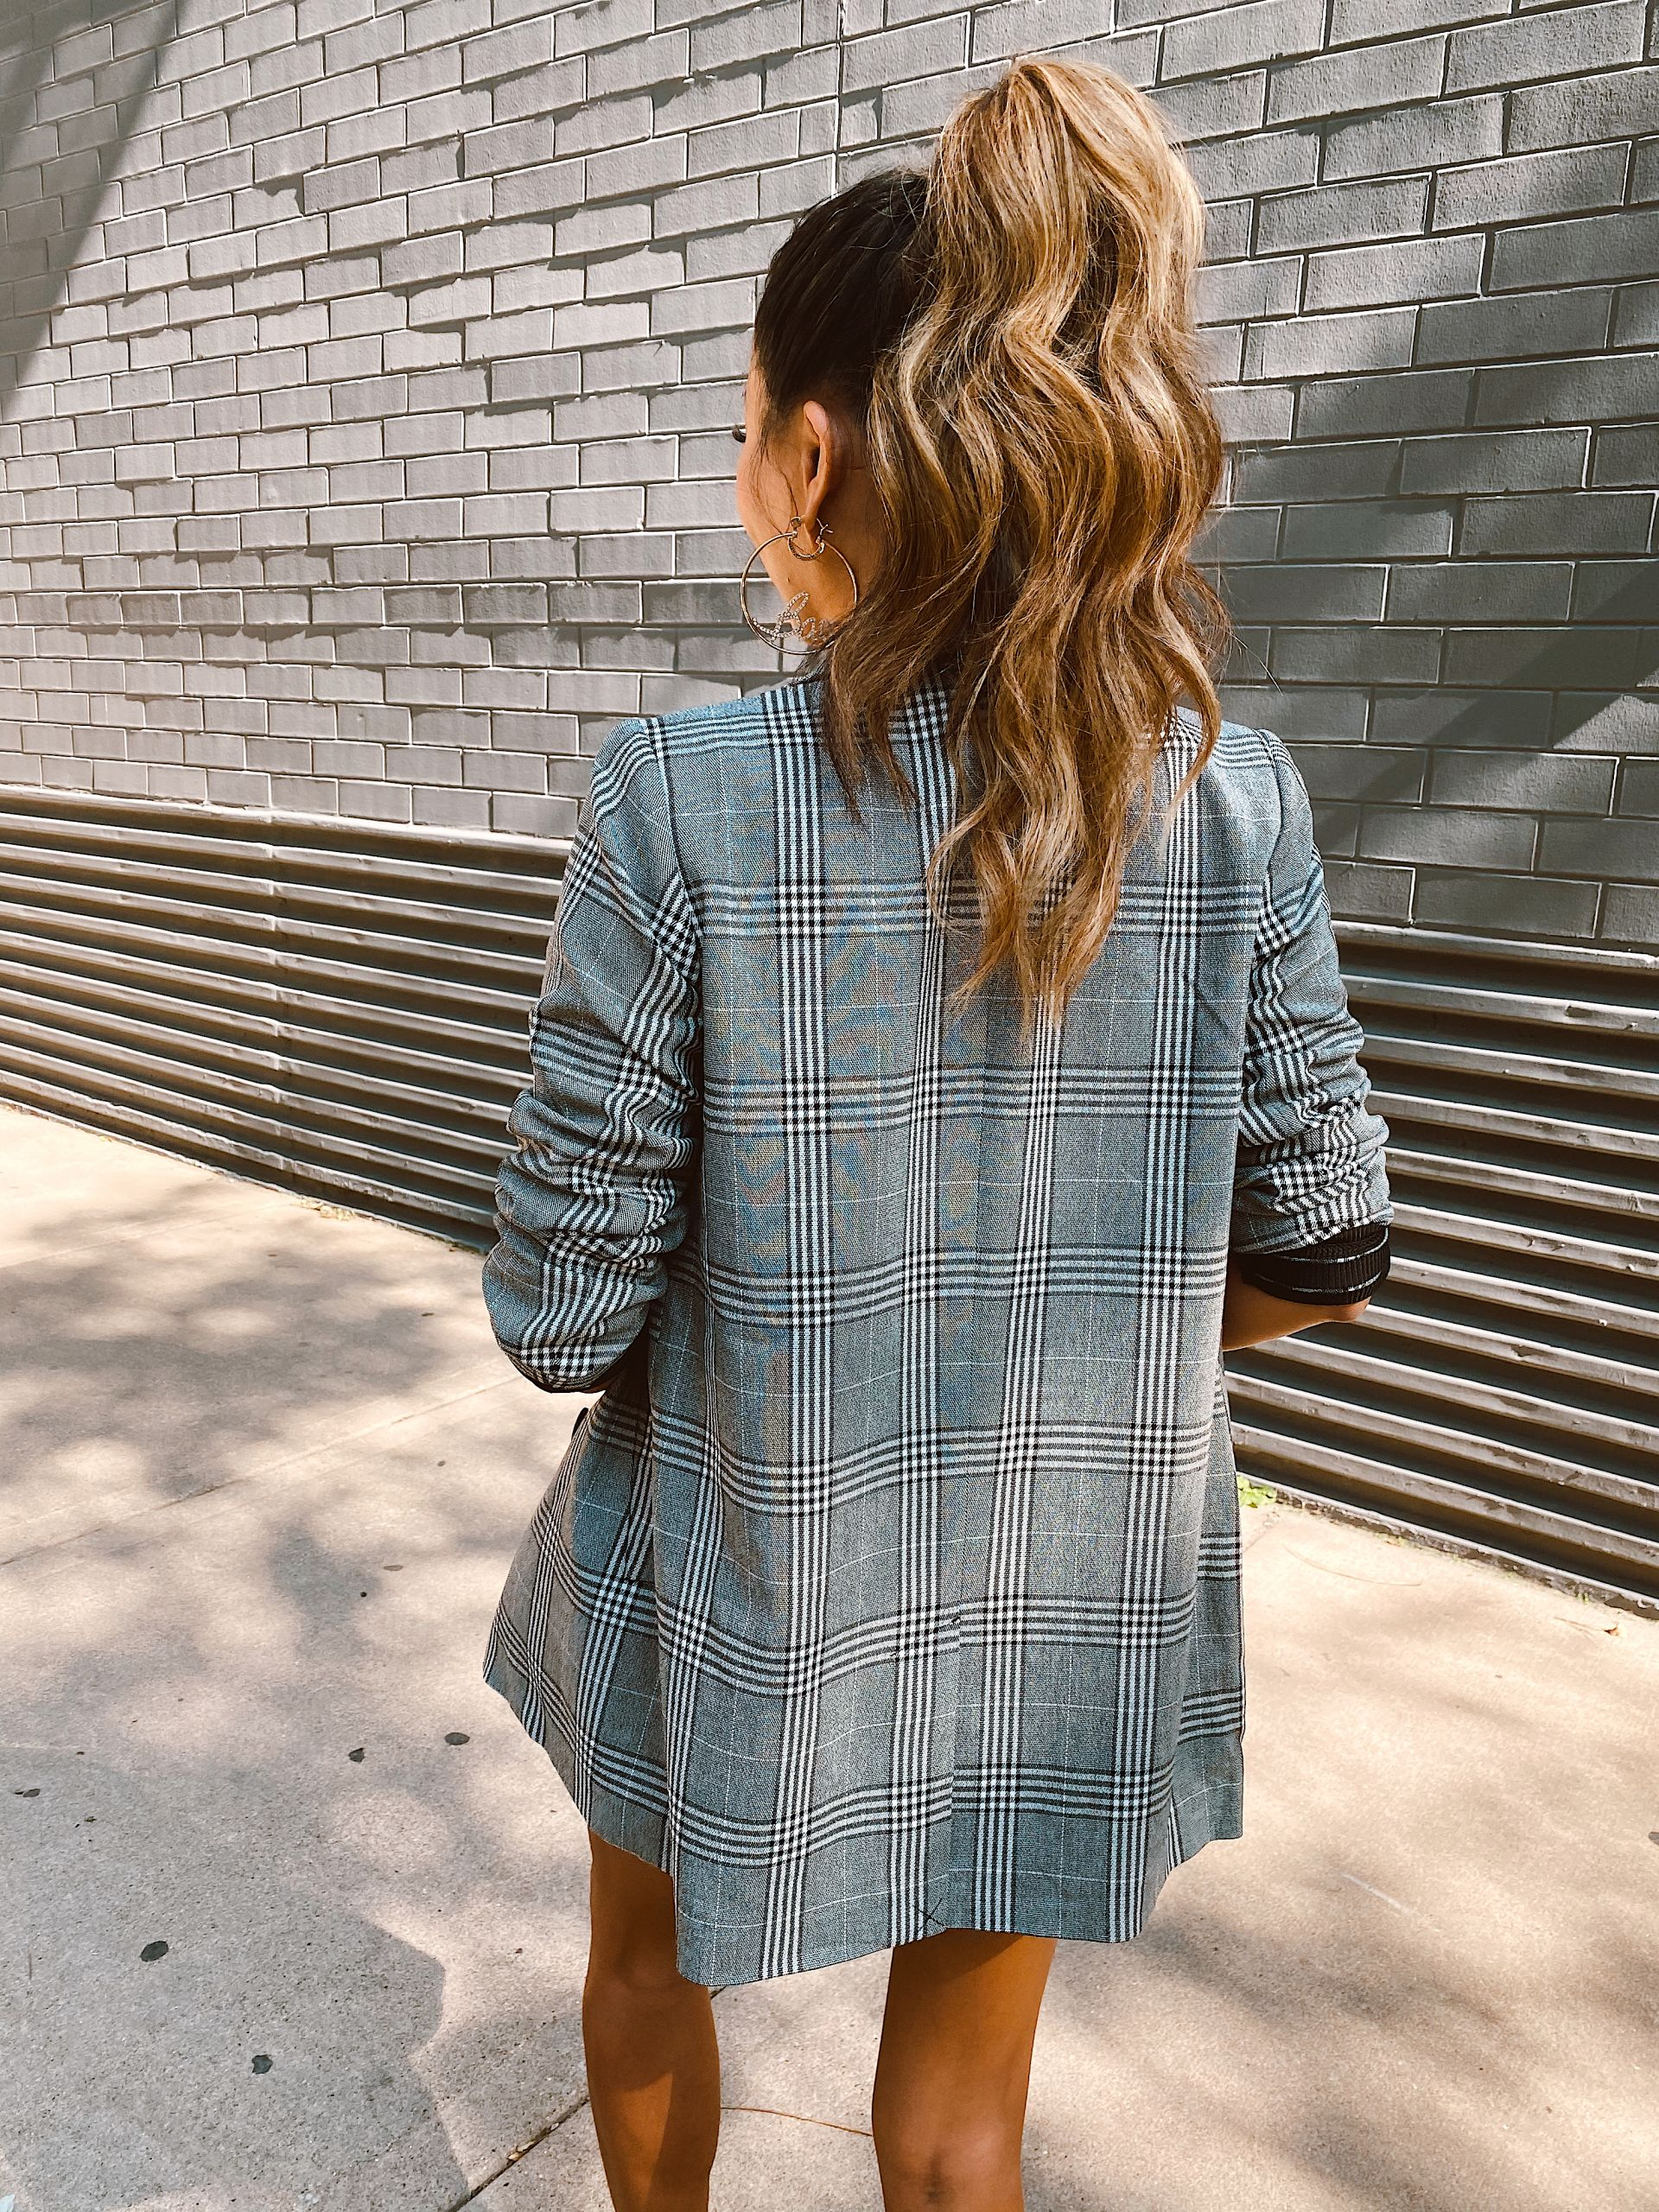 Going out Hair, easy hair styles, best ponytail style, best asian hair, best chicago hair, best hair styles for night, best wave, jennifer worman, chicago beauty blogger, bobby pin inspiration hairstyles, glam ponytail, hair extension ponytail